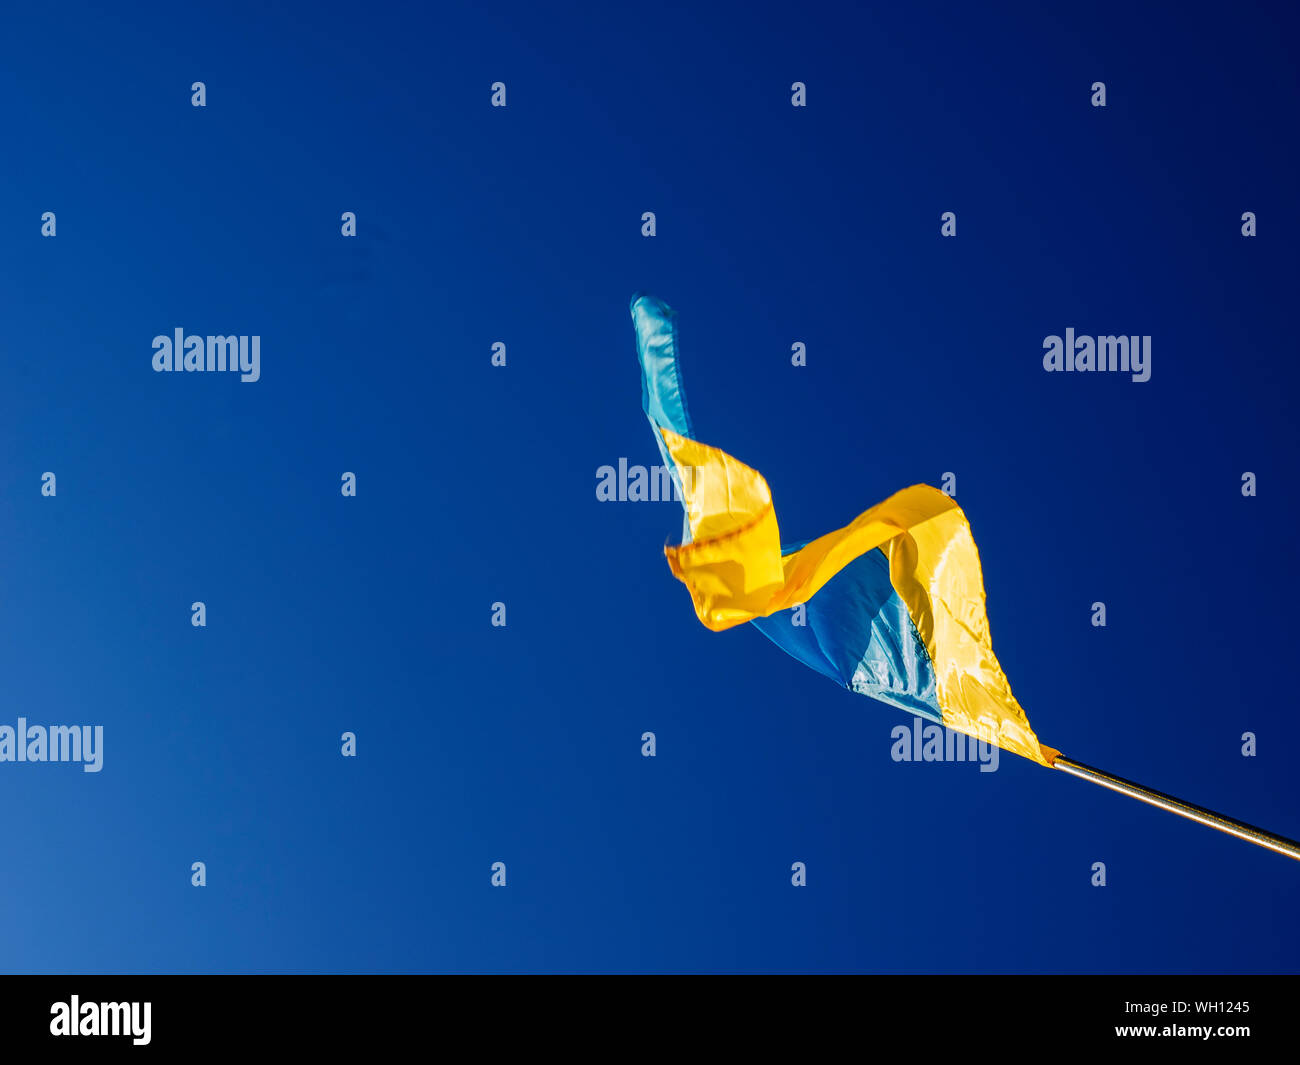 Low Angle View Of Ukrainian Flag Waving Against Clear Blue Sky Stock Photo